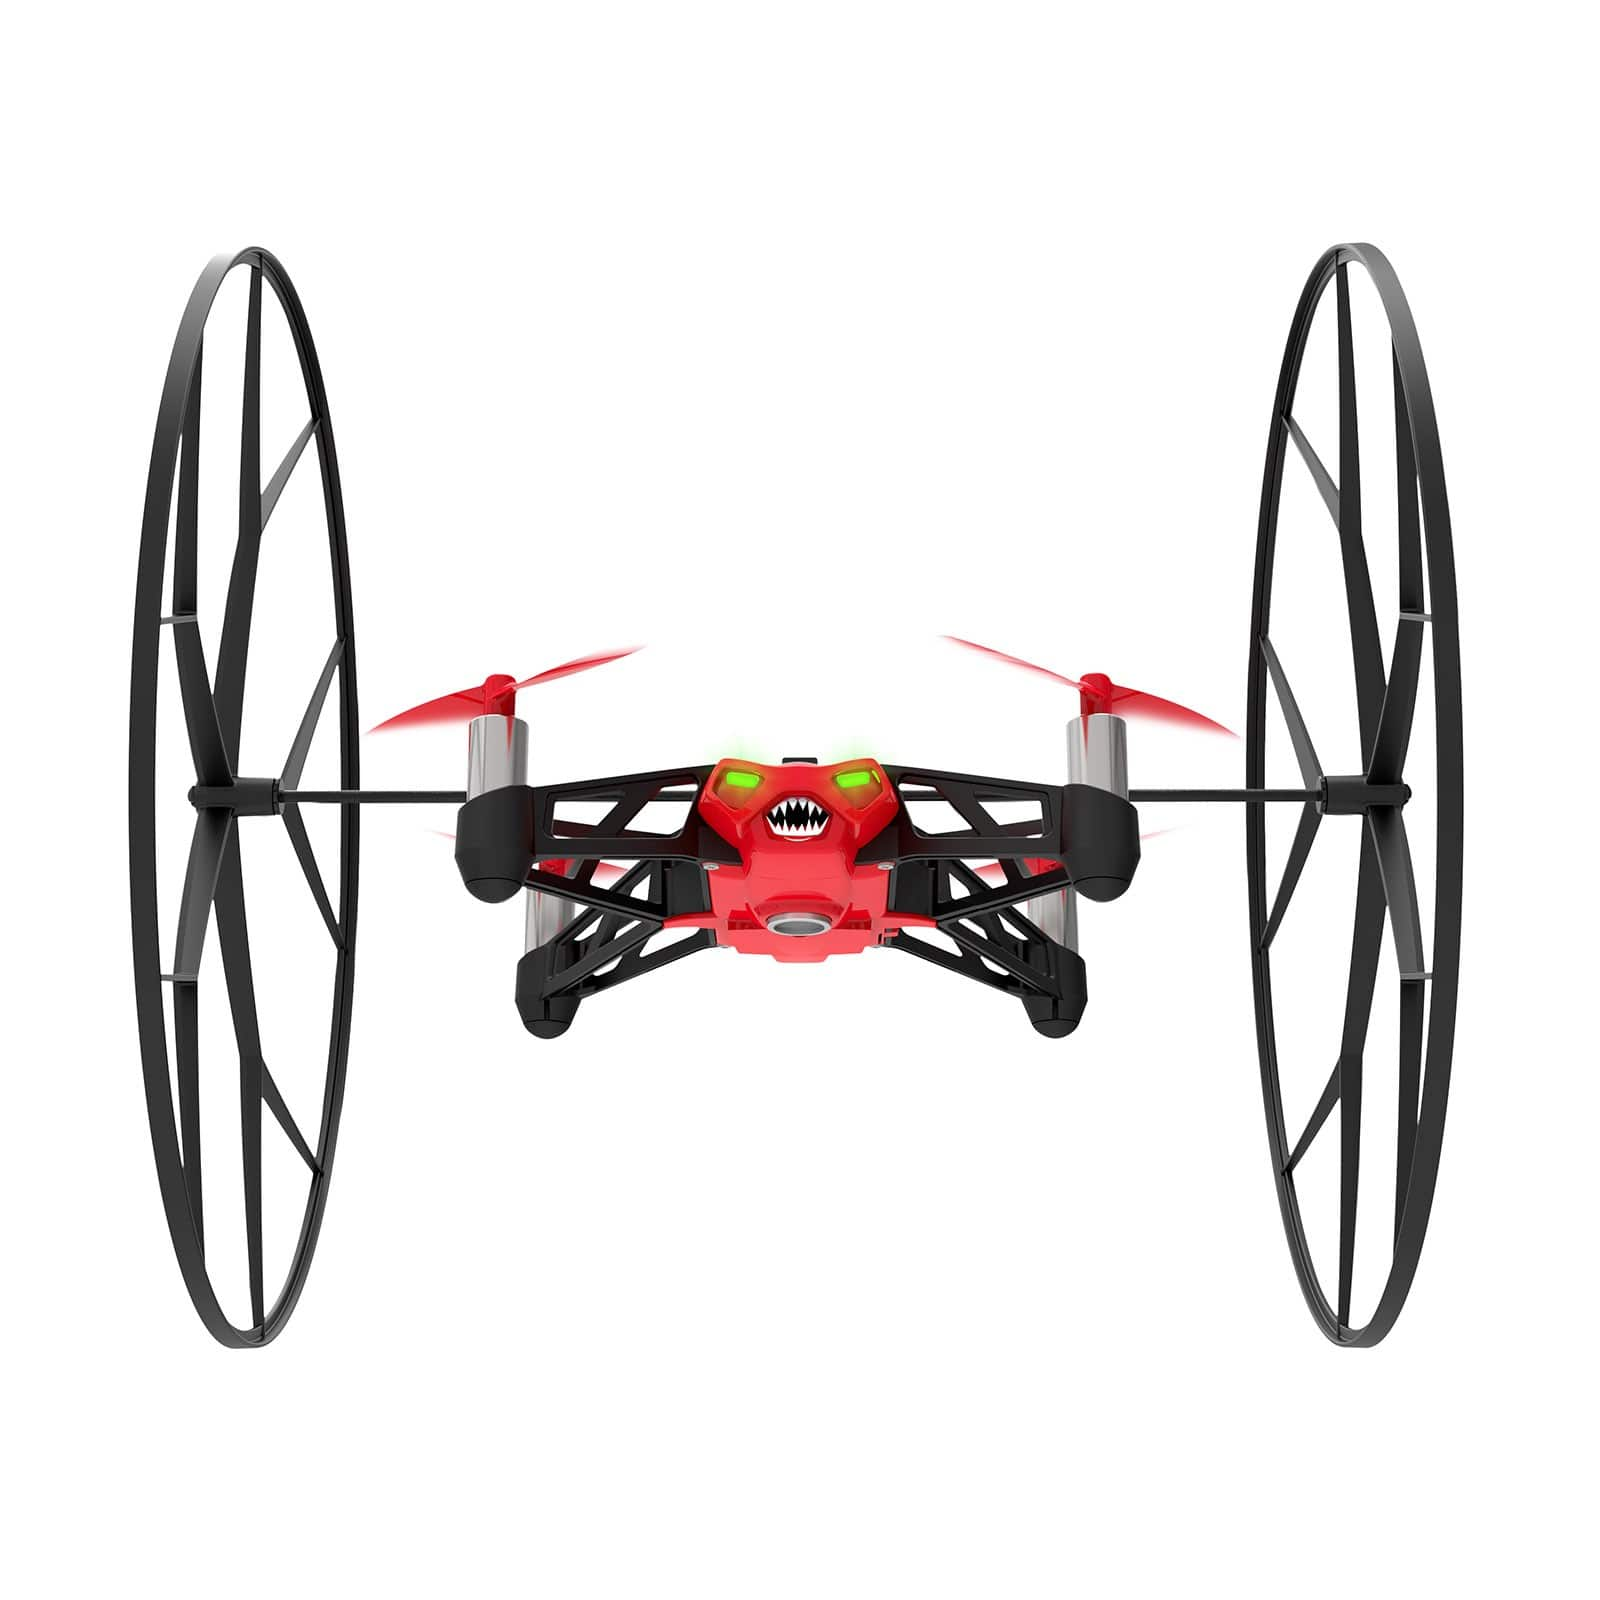 Parrott Rolling Spider Helicopter with HD Camera (refurb) $15 + free shipping